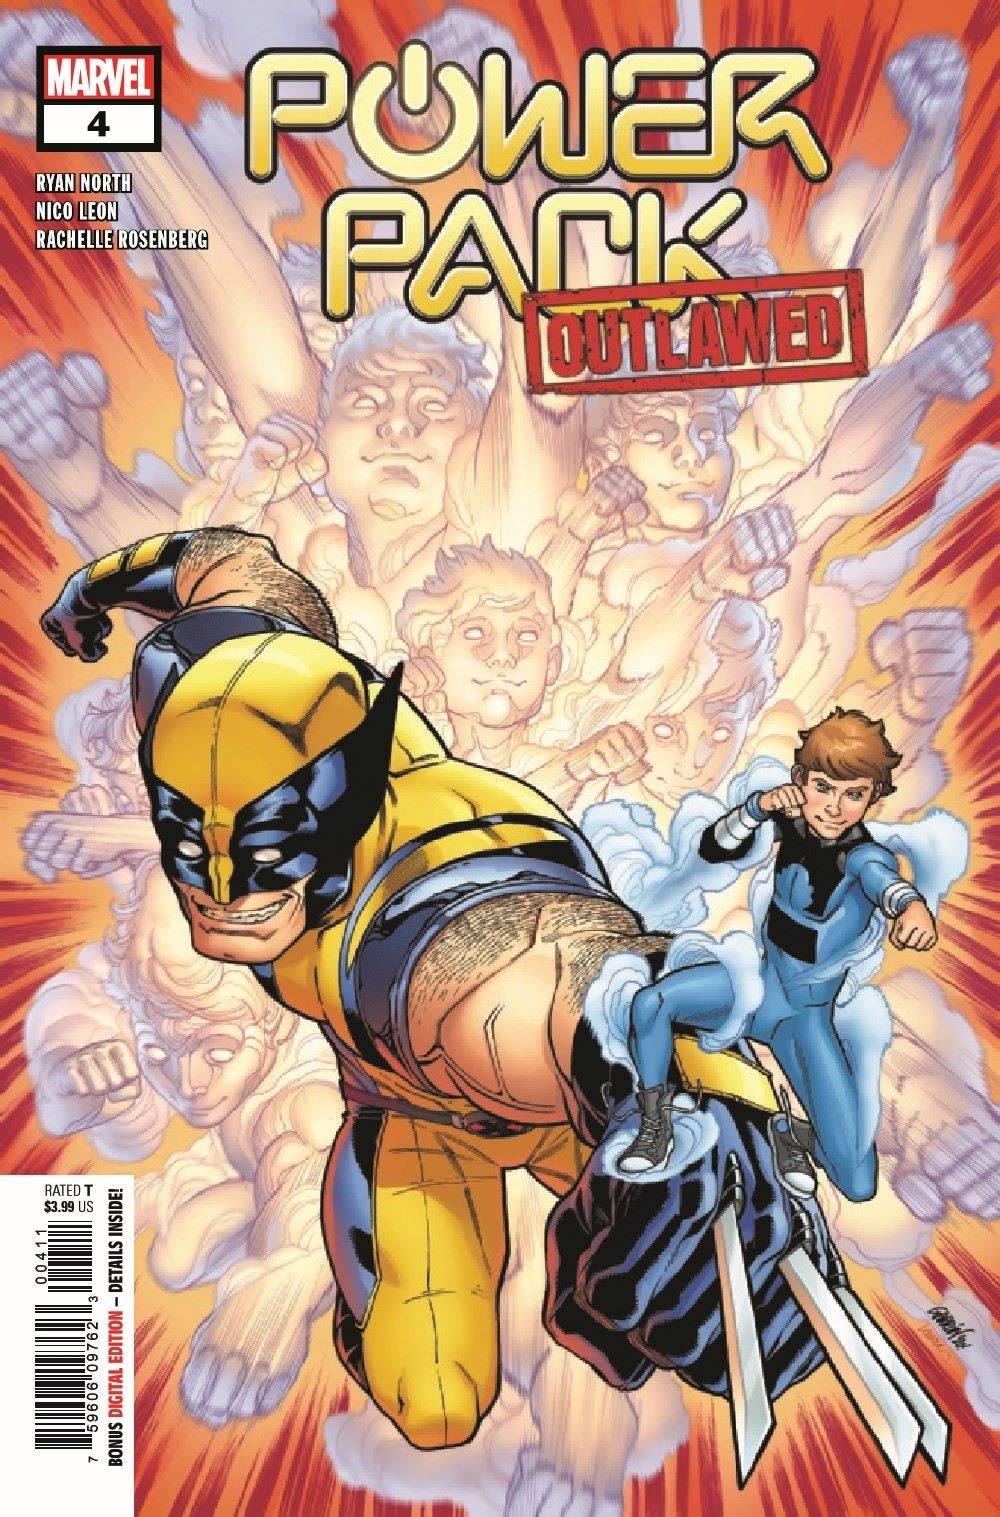 PWRPAC2020004_Preview-1 ComicList Previews: POWER PACK #4 (OF 5)